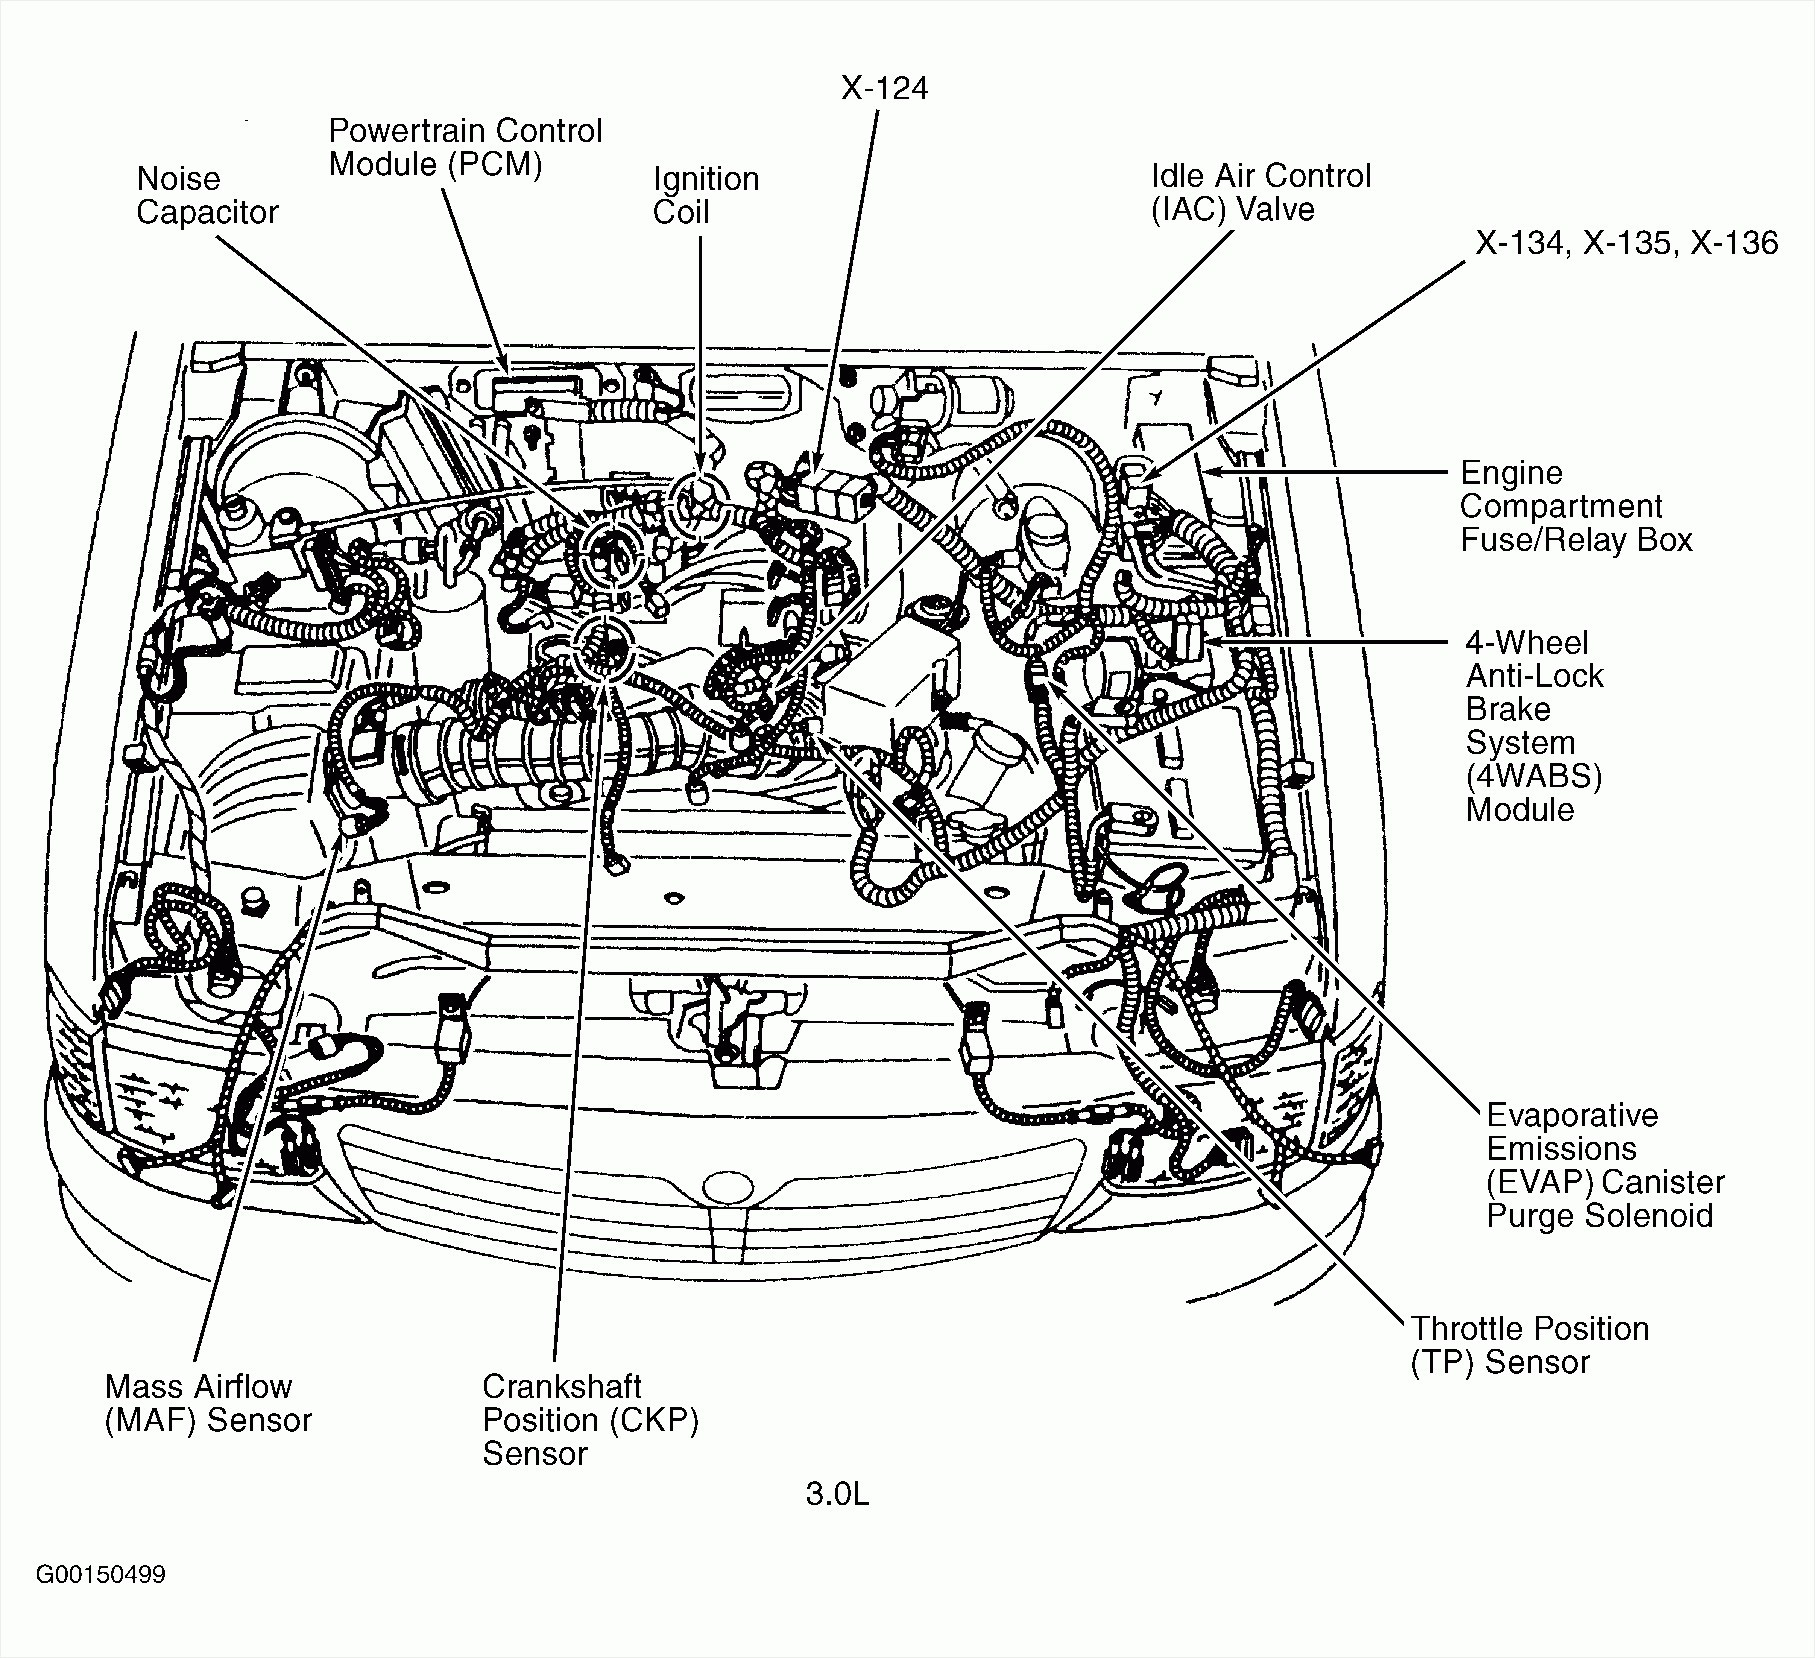 2010 chevy aveo engine diagram query 2010 Mercury Mountaineer Engine Diagram